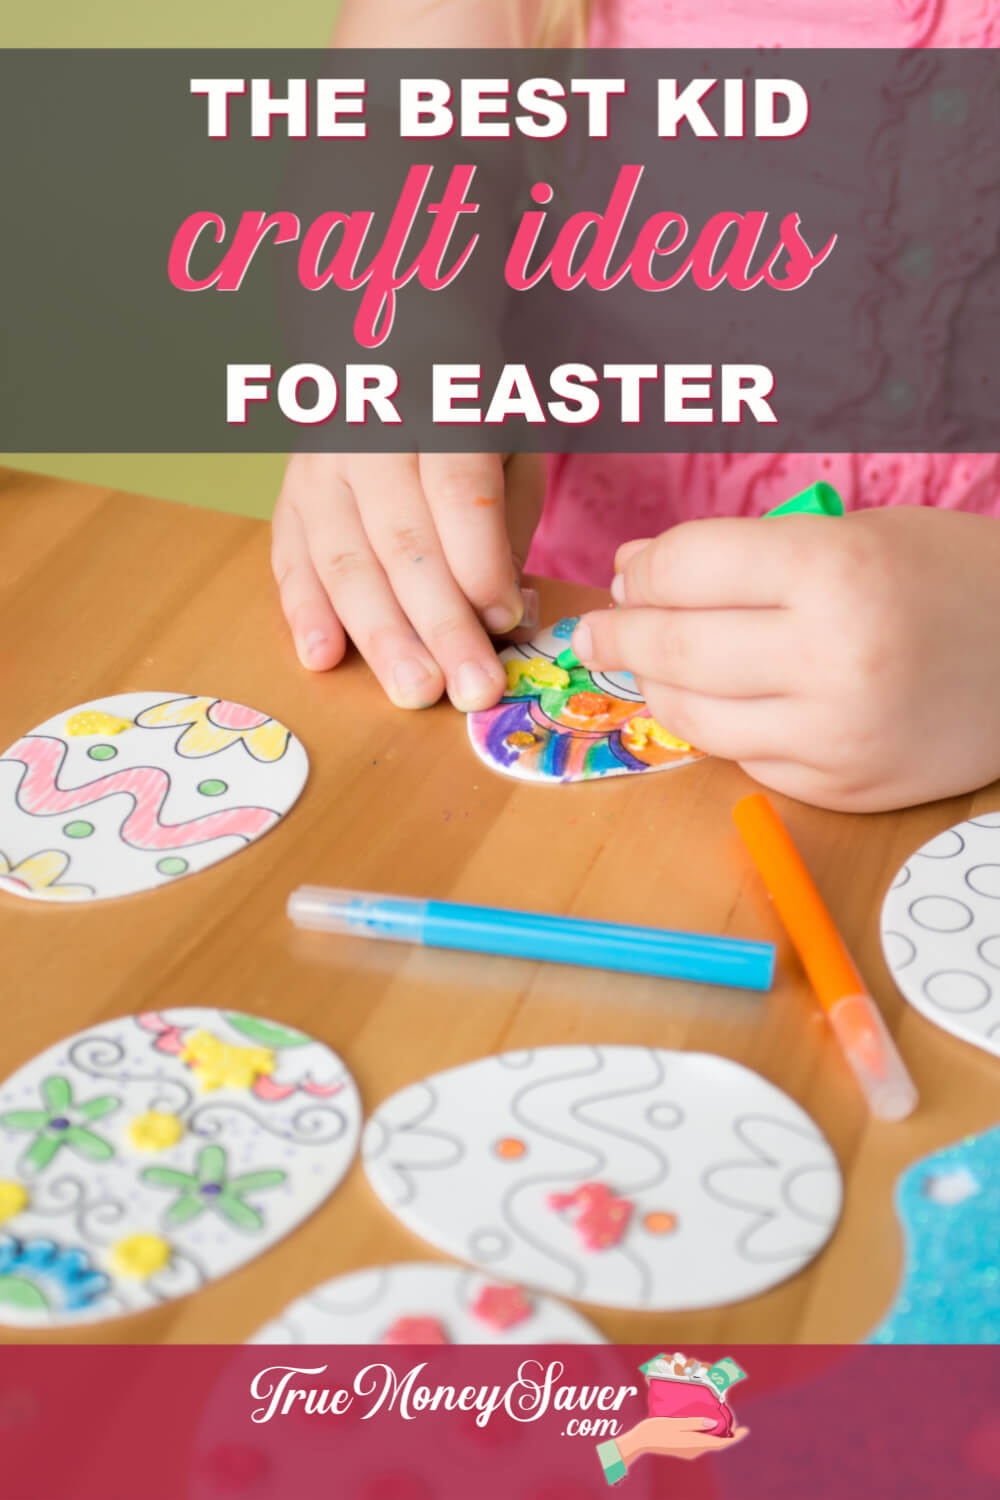 Need some easy kids Easter crafts? I\'ve got you covered with the best kid\'s Easter crafts ideas! Plus, these DIY easy kid\'s crafts ideas are super cheap and super fun too! Let\'s get started crafting! #truemoneysaver #kidcrafts #eastercraft #eastercrafts #eastercraft #eastercraftsforkids #eastercrafting #kidcraft #kidcraftideas #kidcrafters #kidscrafting #kidscraft #kidscrafts #kidscraftideas #kidscrafting